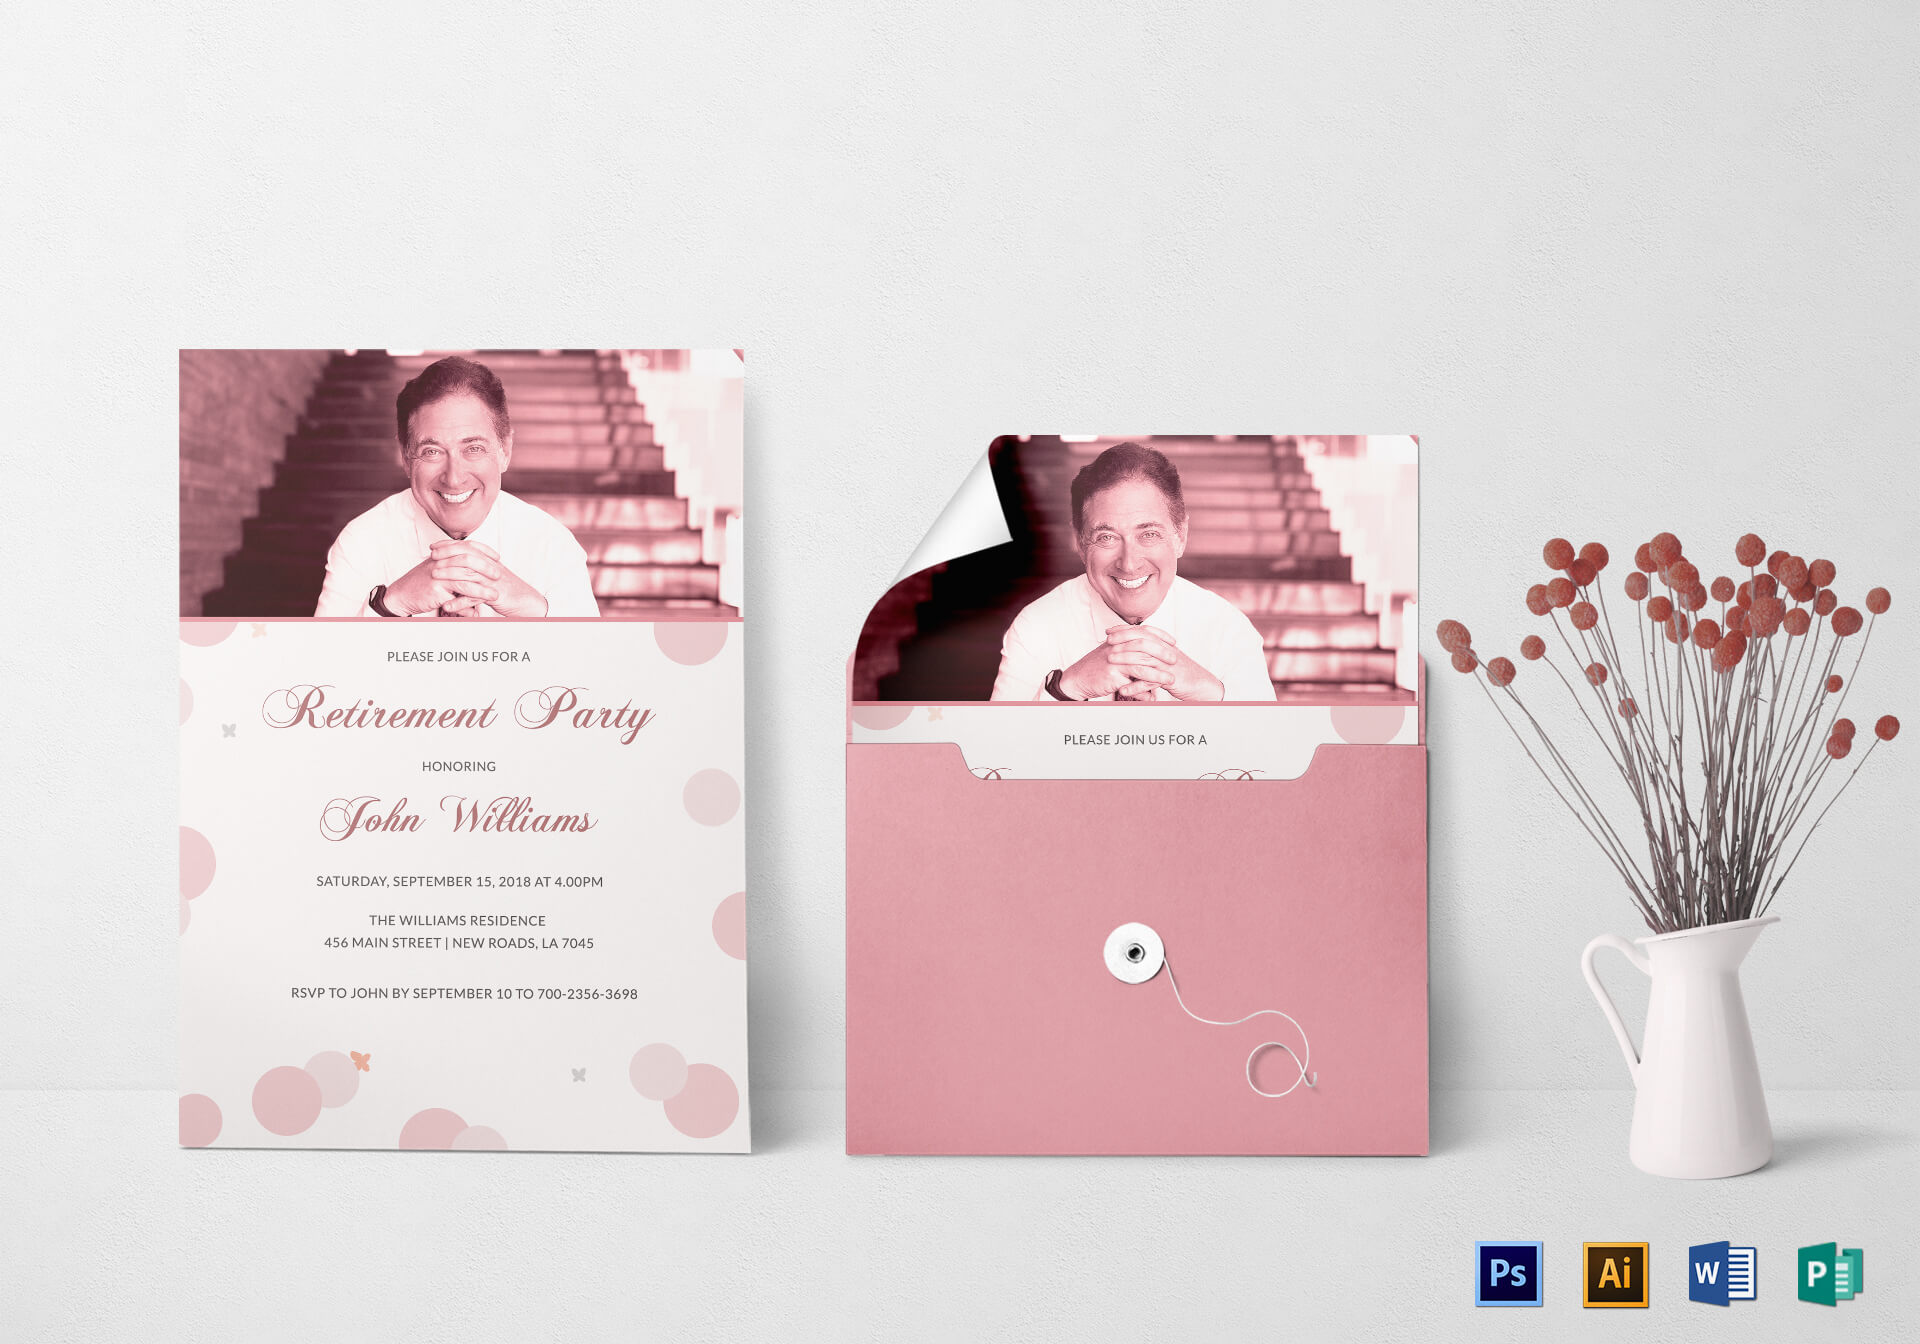 Honored Retirement Party Invitation Card Template regarding Retirement Card Template